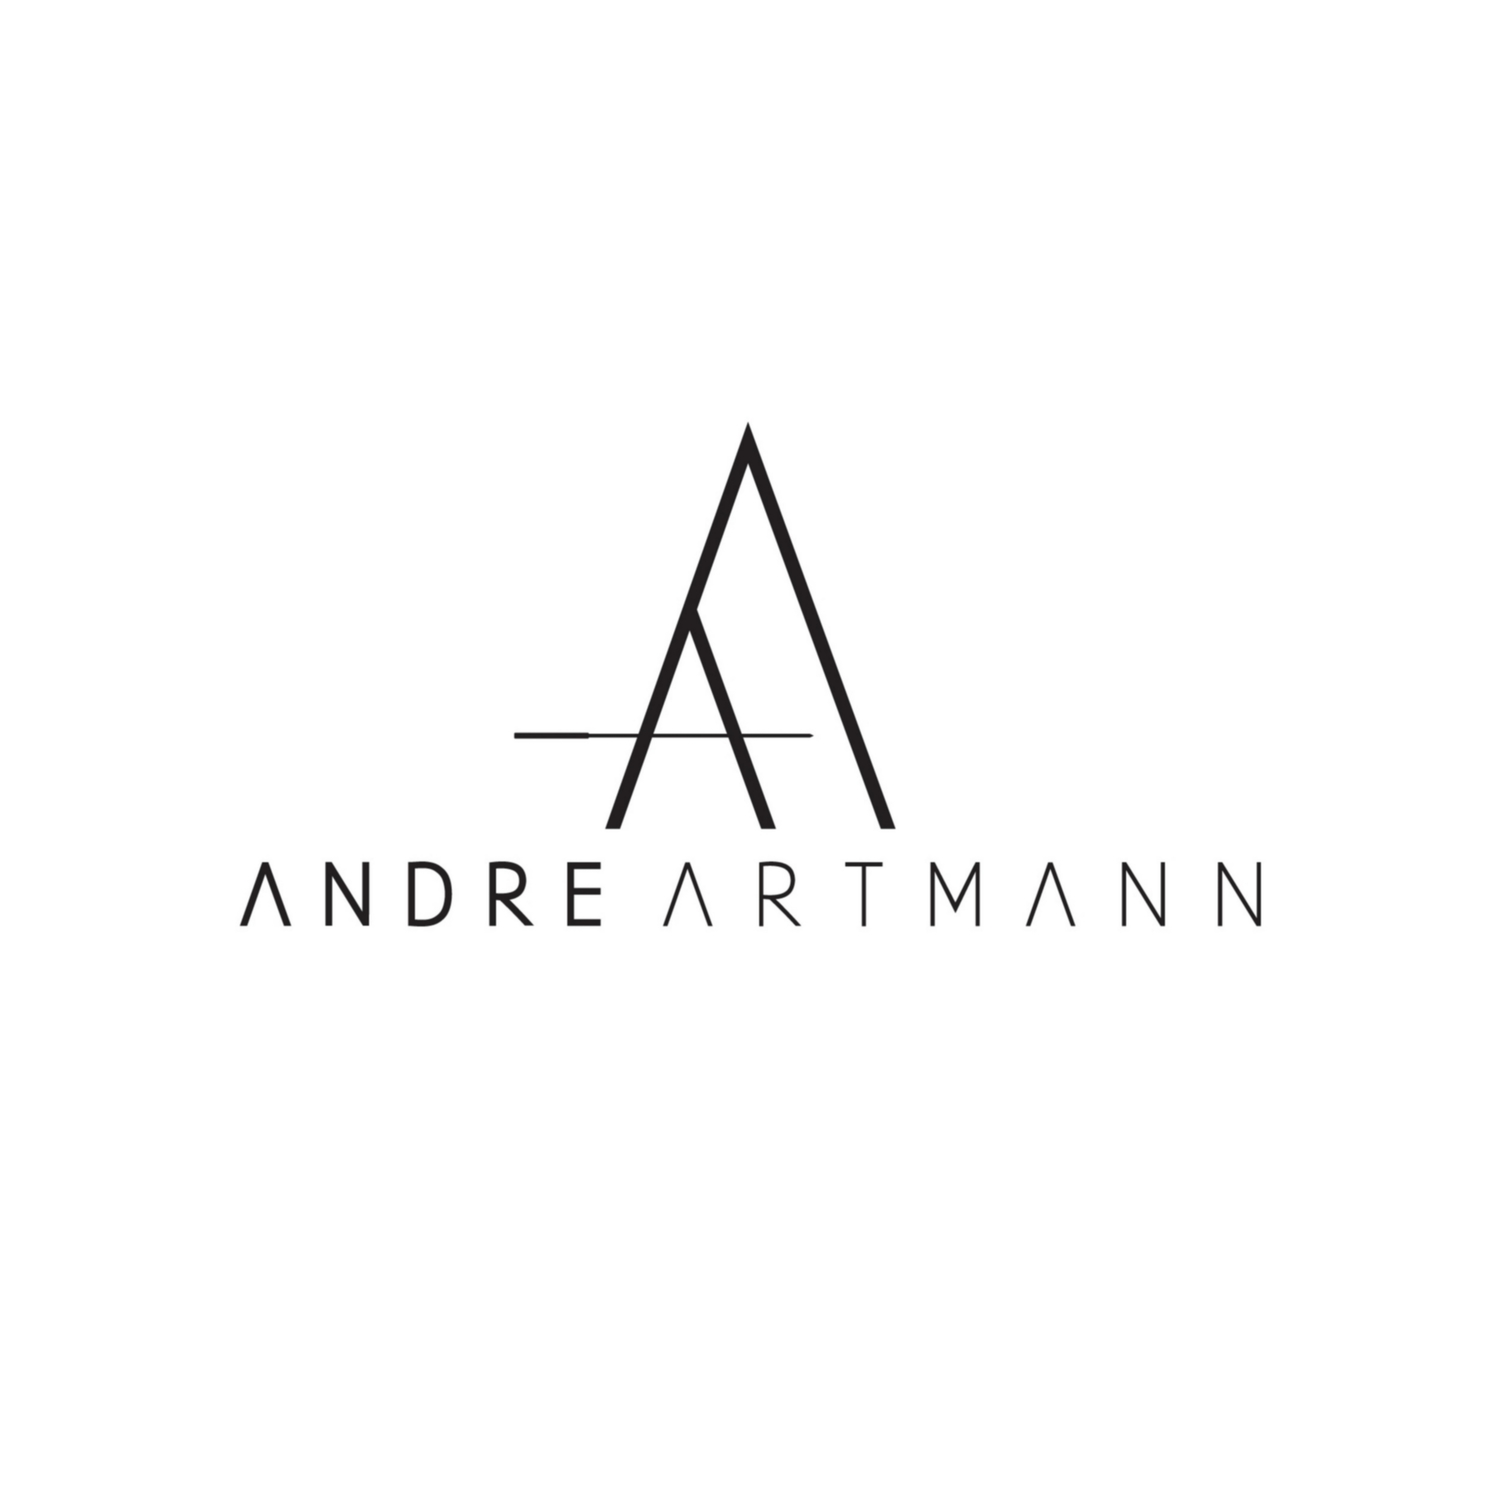 Andre Artmann Acupuncture and Allergy Testing Gold Coast